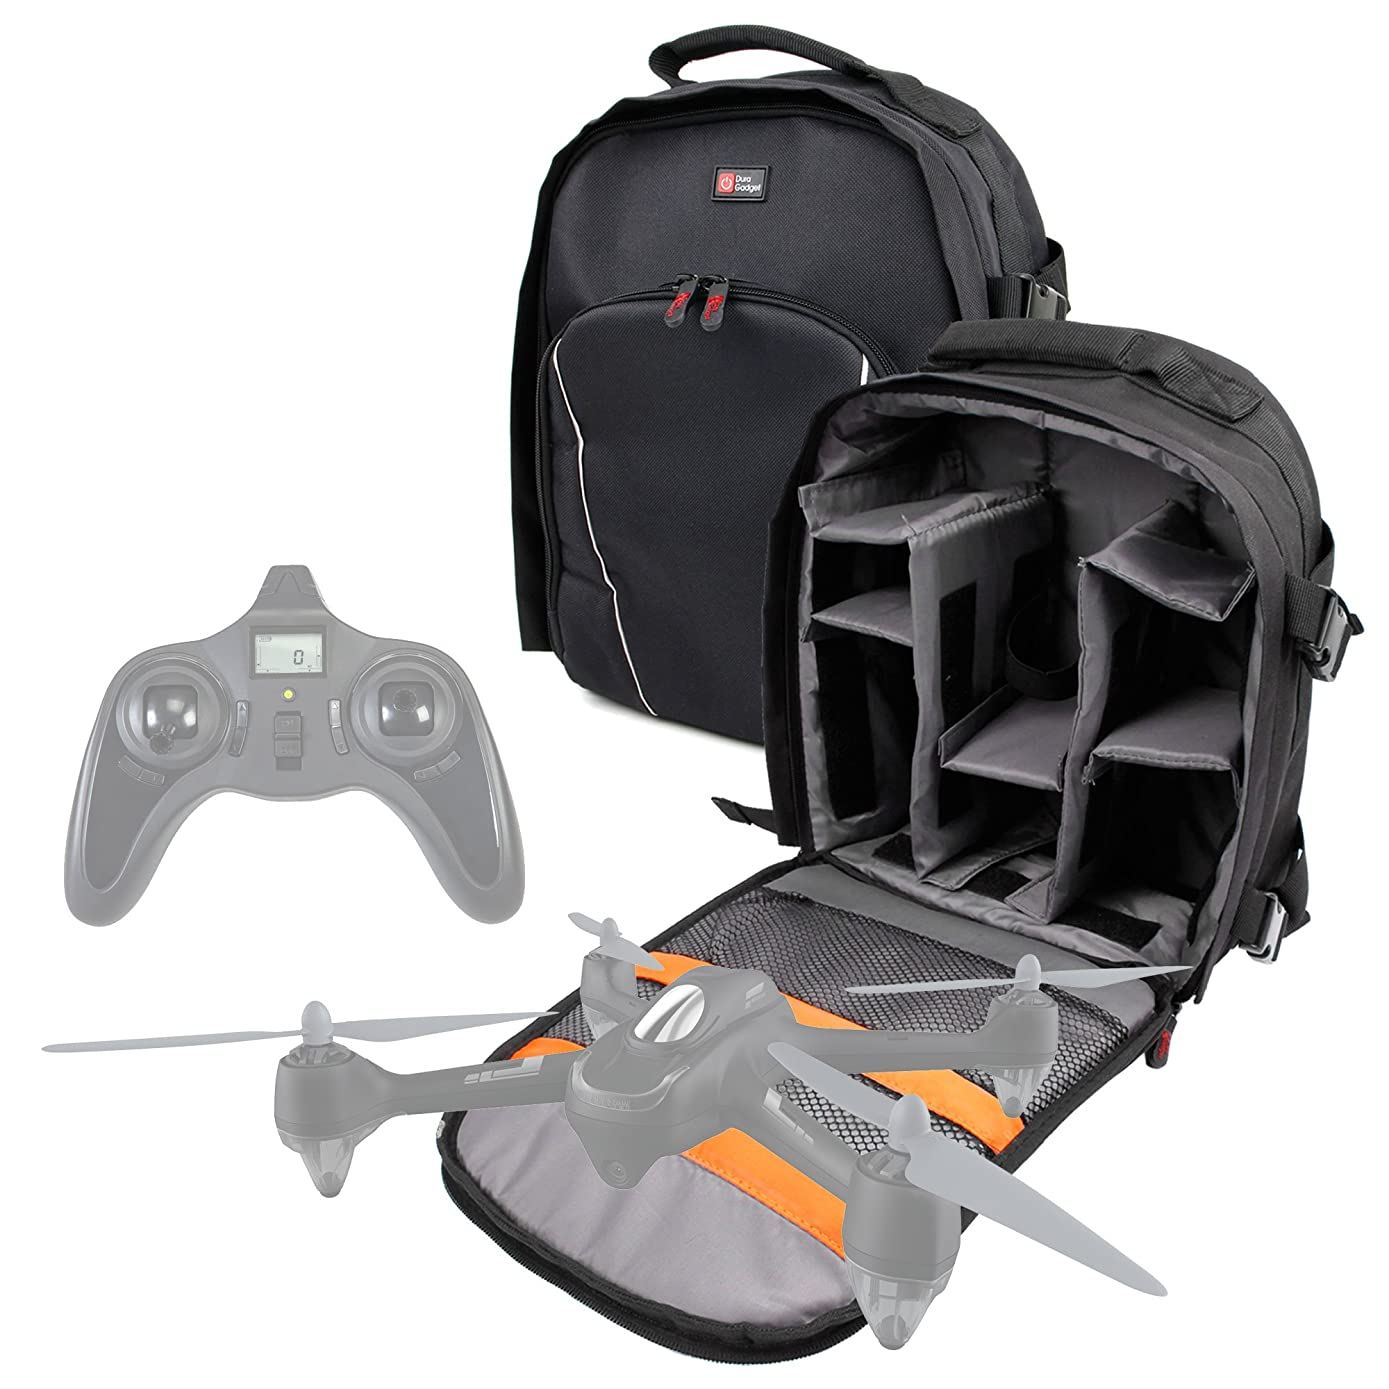 DURAGADGET Black Water-Resistant Backpack with Customisable Interior & Raincover - Compatible with The Hubsan X4 H501C BRUSHLESS|X4 H502C|X4 H502E Desire|X4 H502S FPV Desire Drone